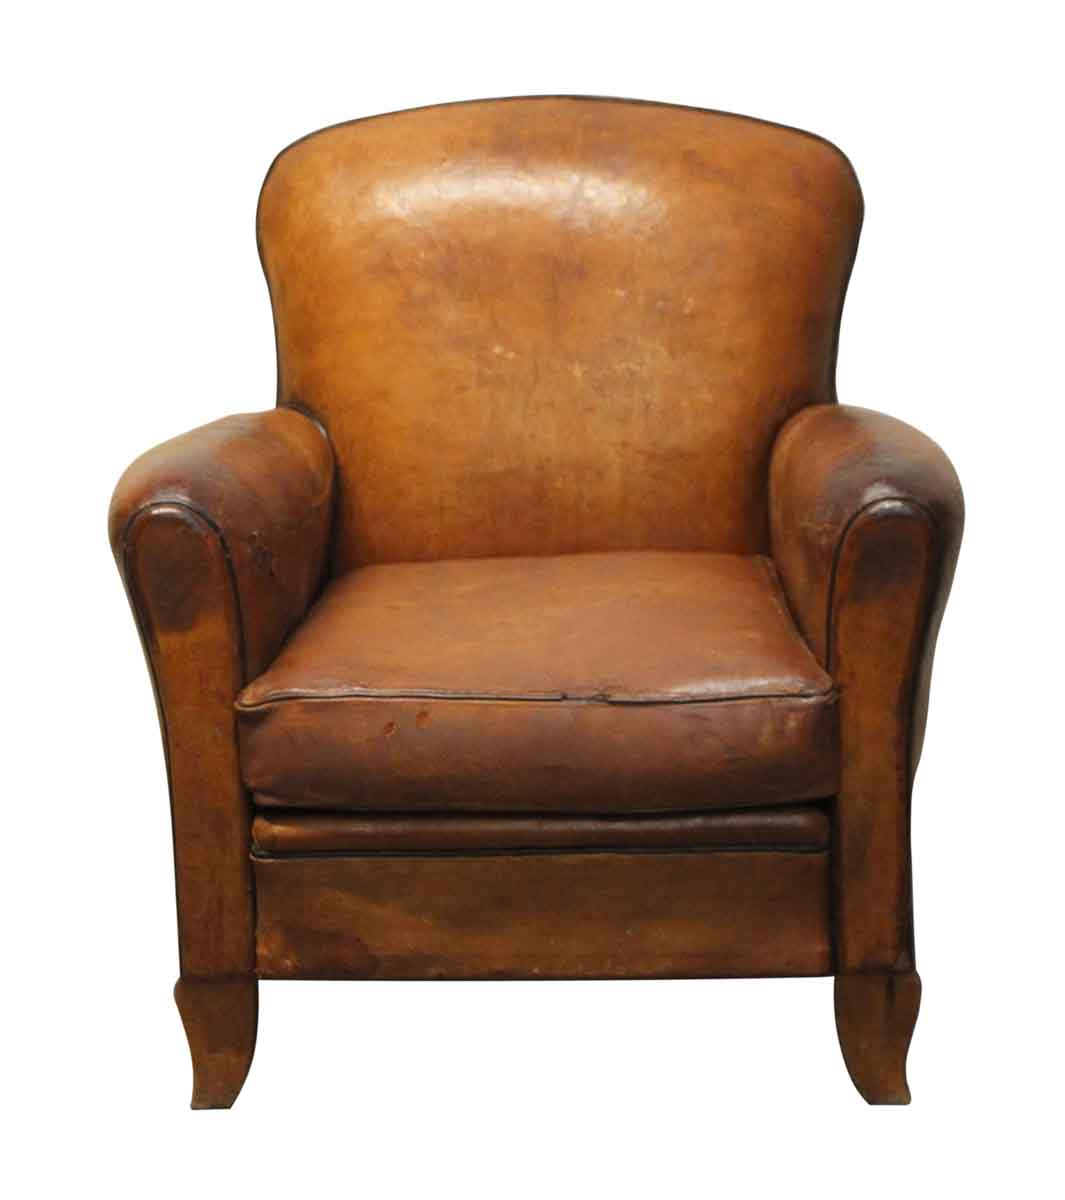 French Leather Vintage Club Chair